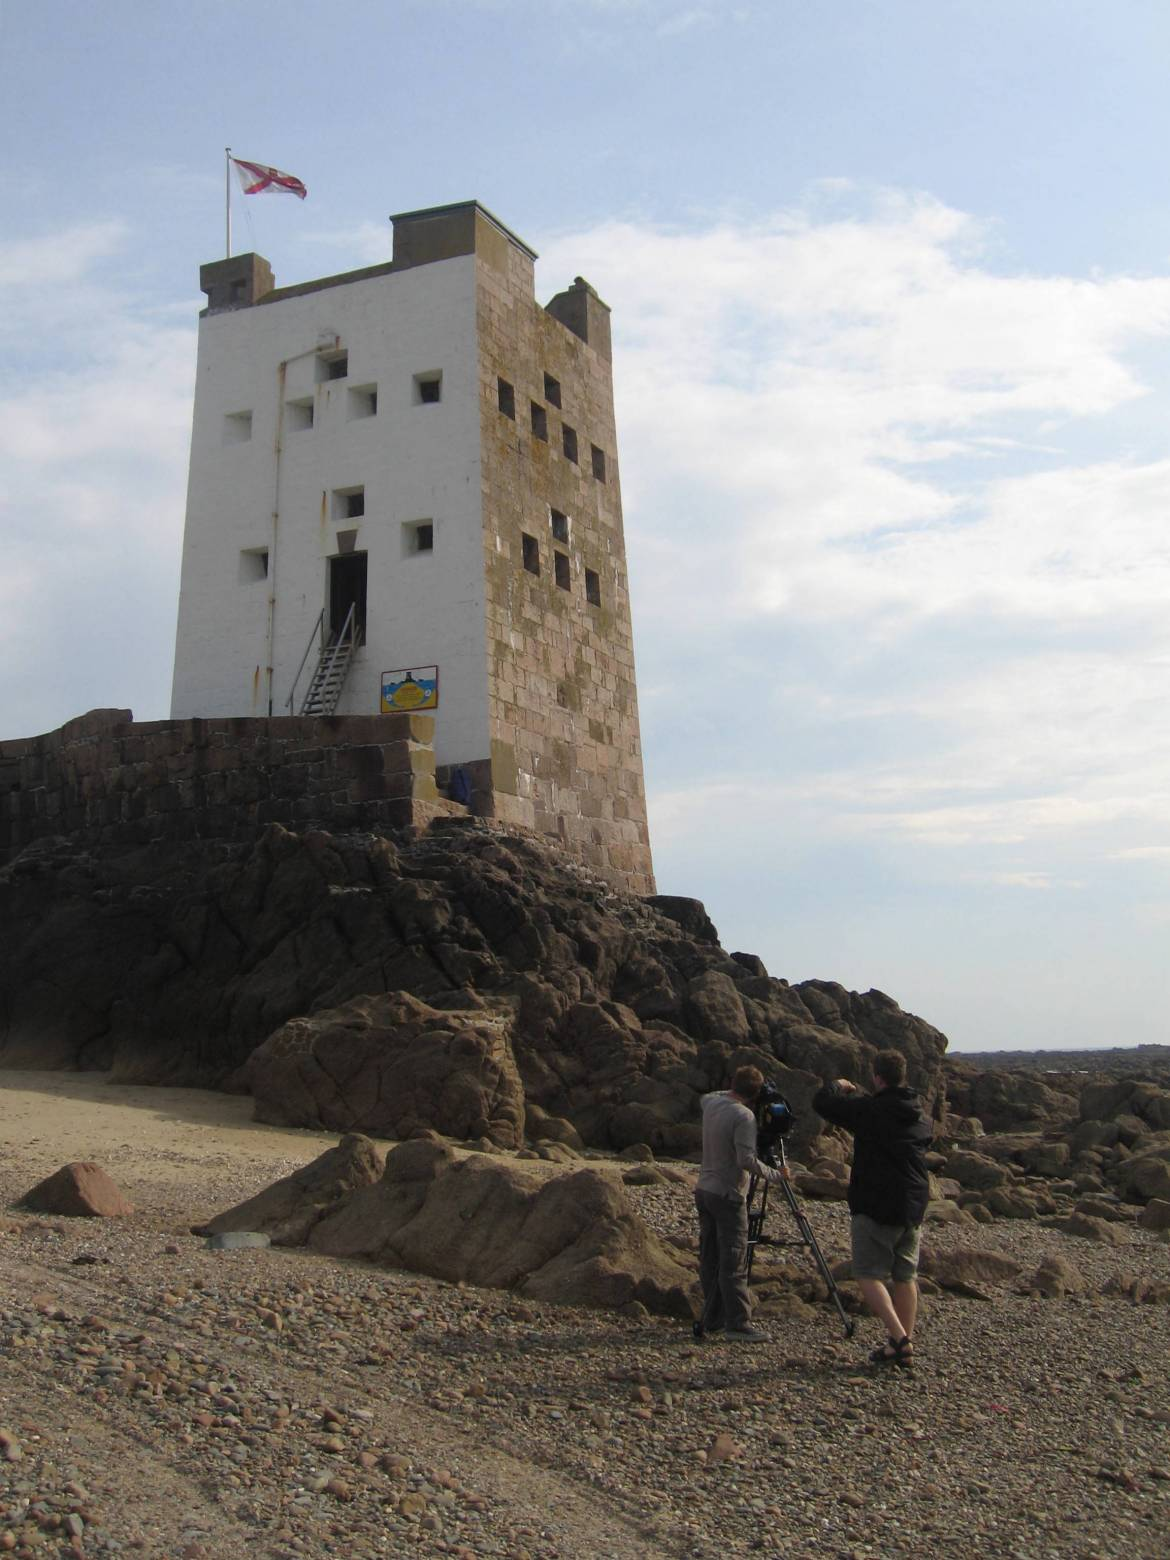 BBC-Coast-filming-at-Seymour-tower-Jersey.jpg